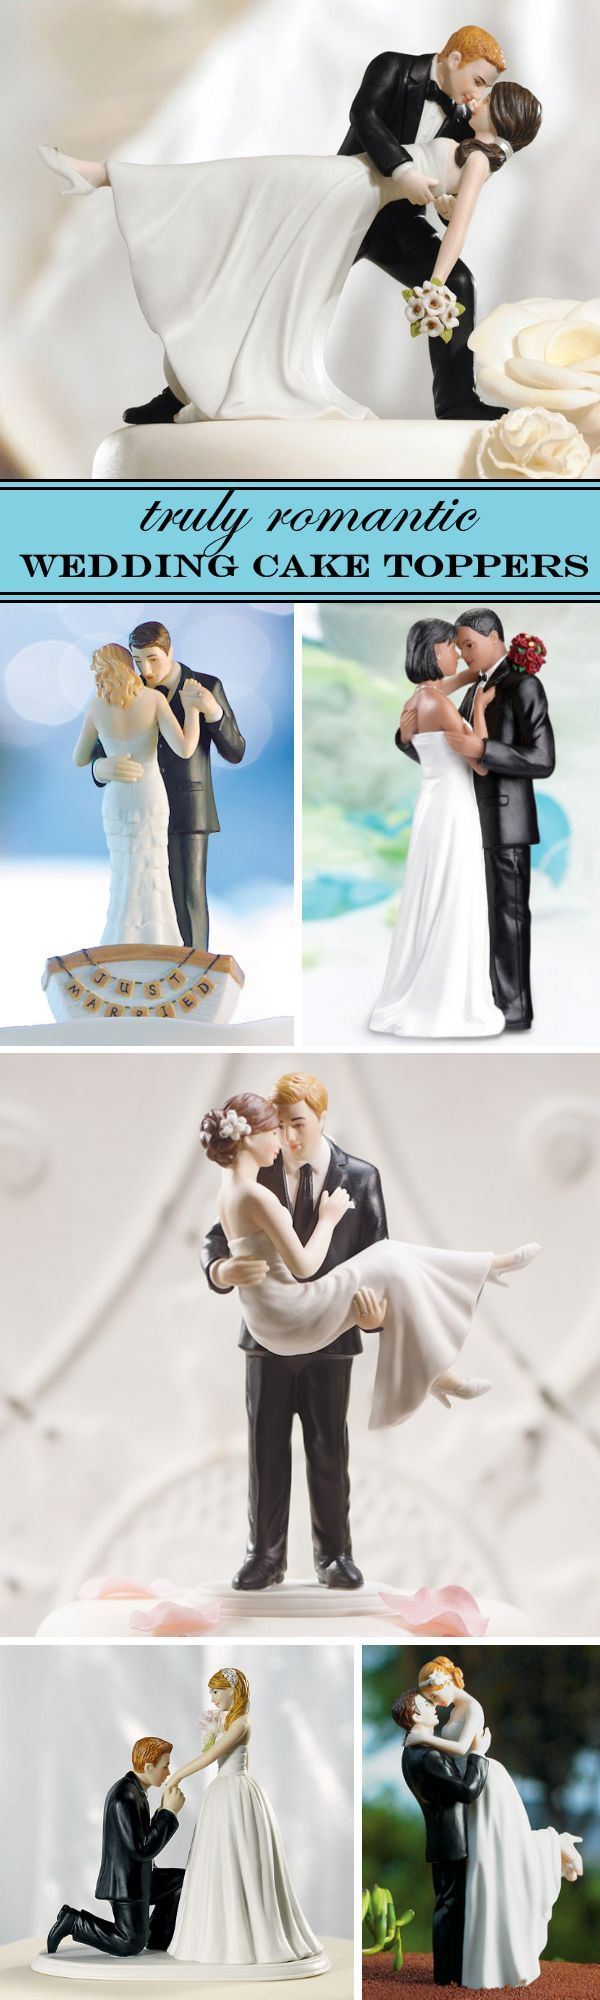 15 Romantic Wedding Cake Toppers that are stylish, modern and ...